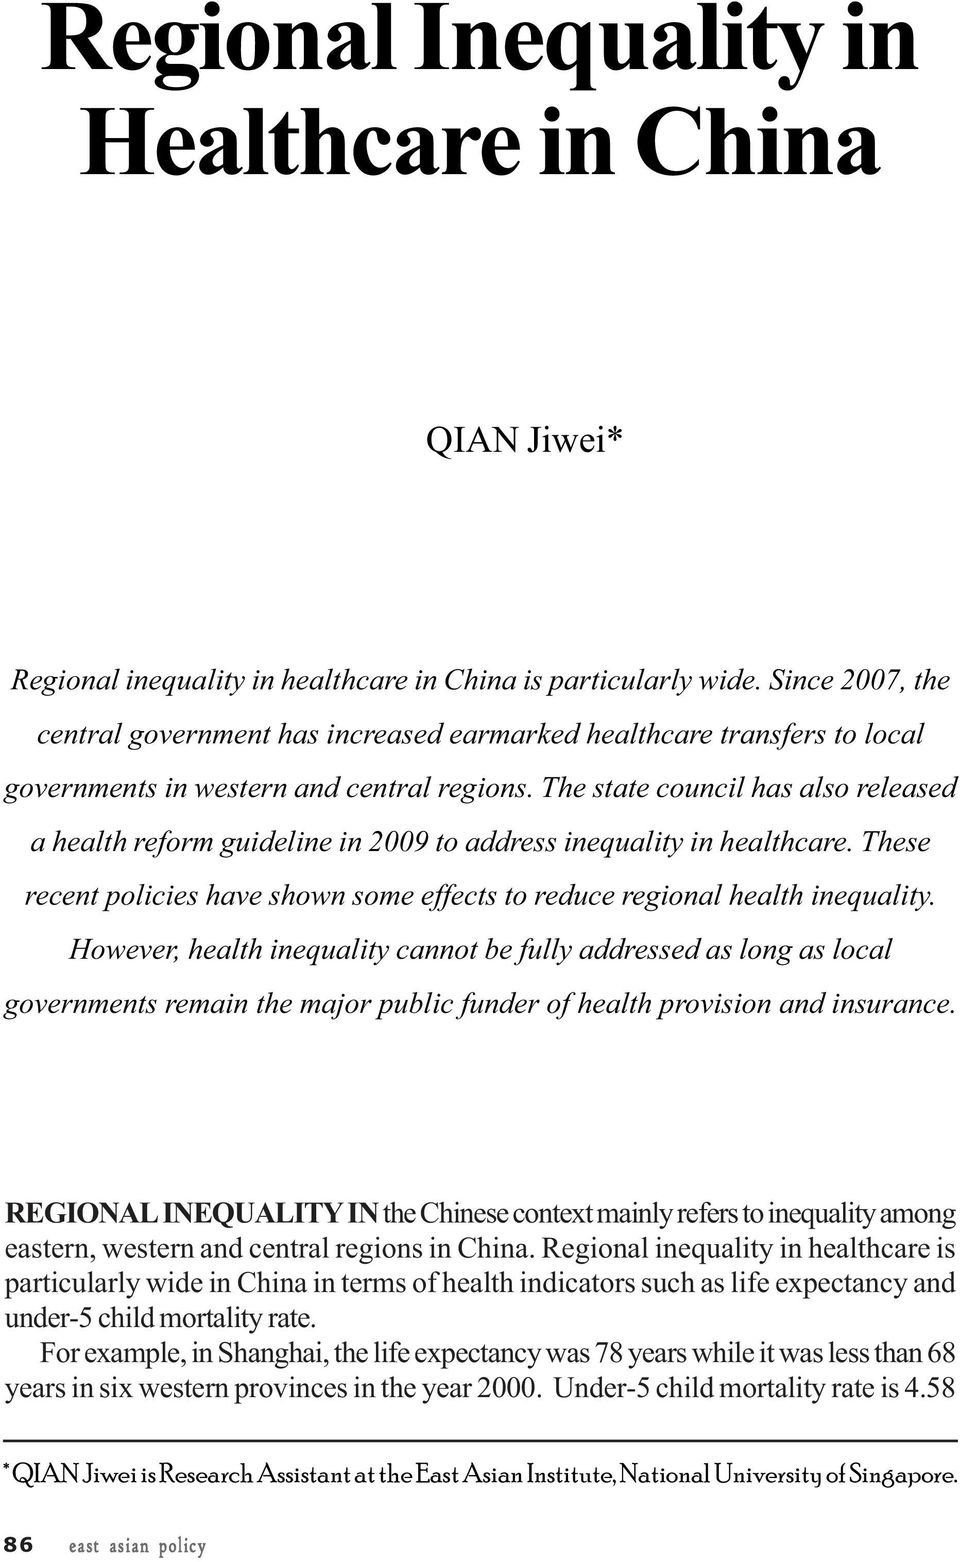 The state council has also released a health reform guideline in 2009 to address inequality in healthcare. These recent policies have shown some effects to reduce regional health inequality.